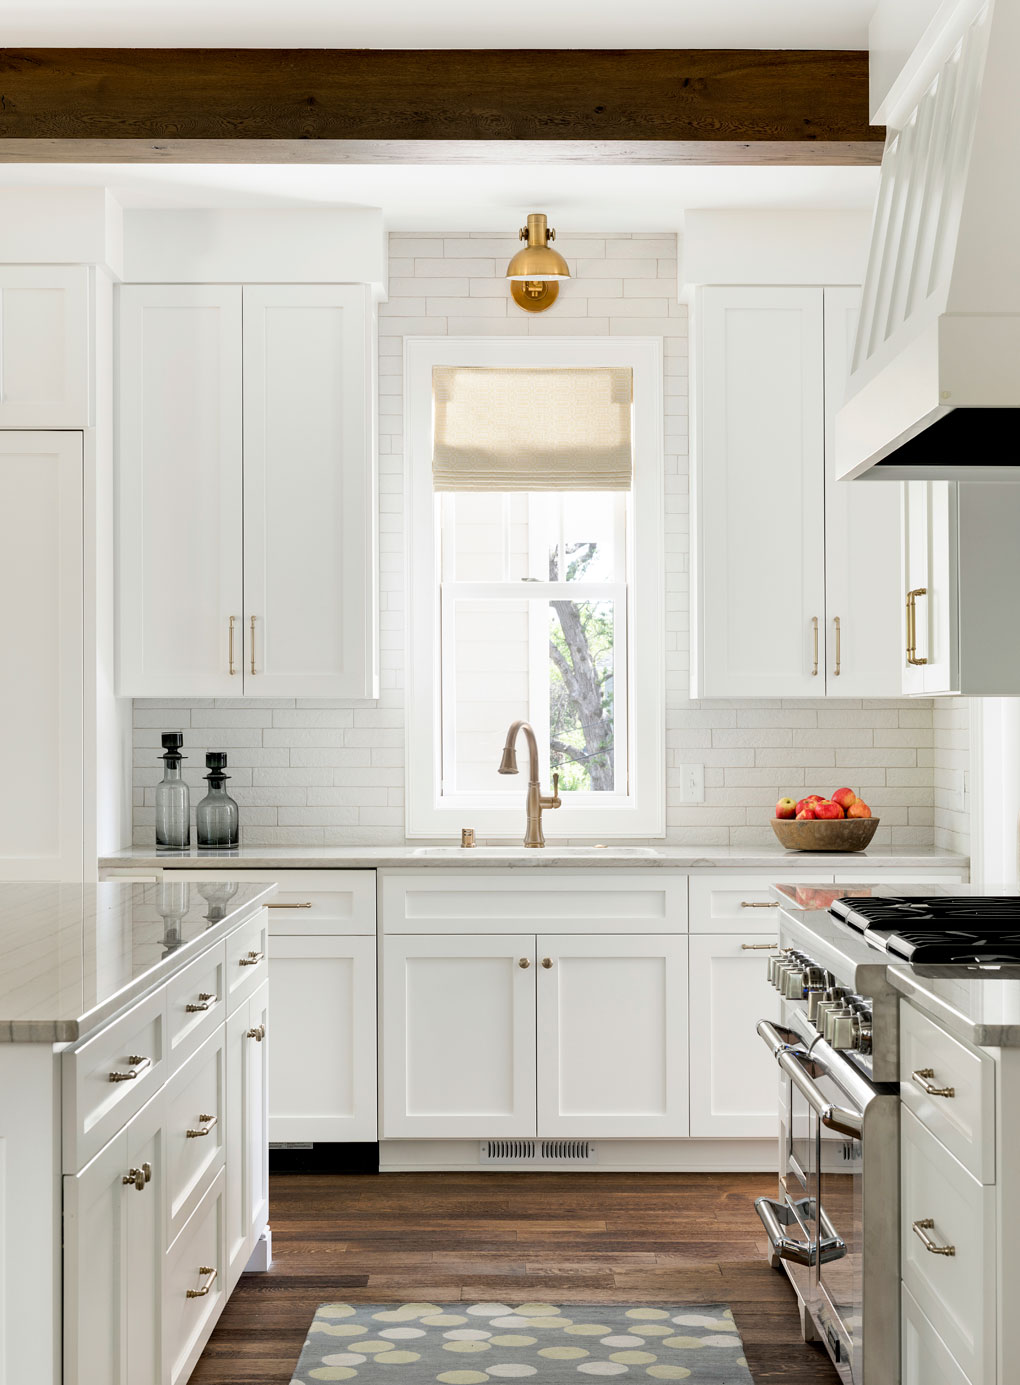 A kitchen with all white cabinetry, a subway tile backsplash and marble countertops.